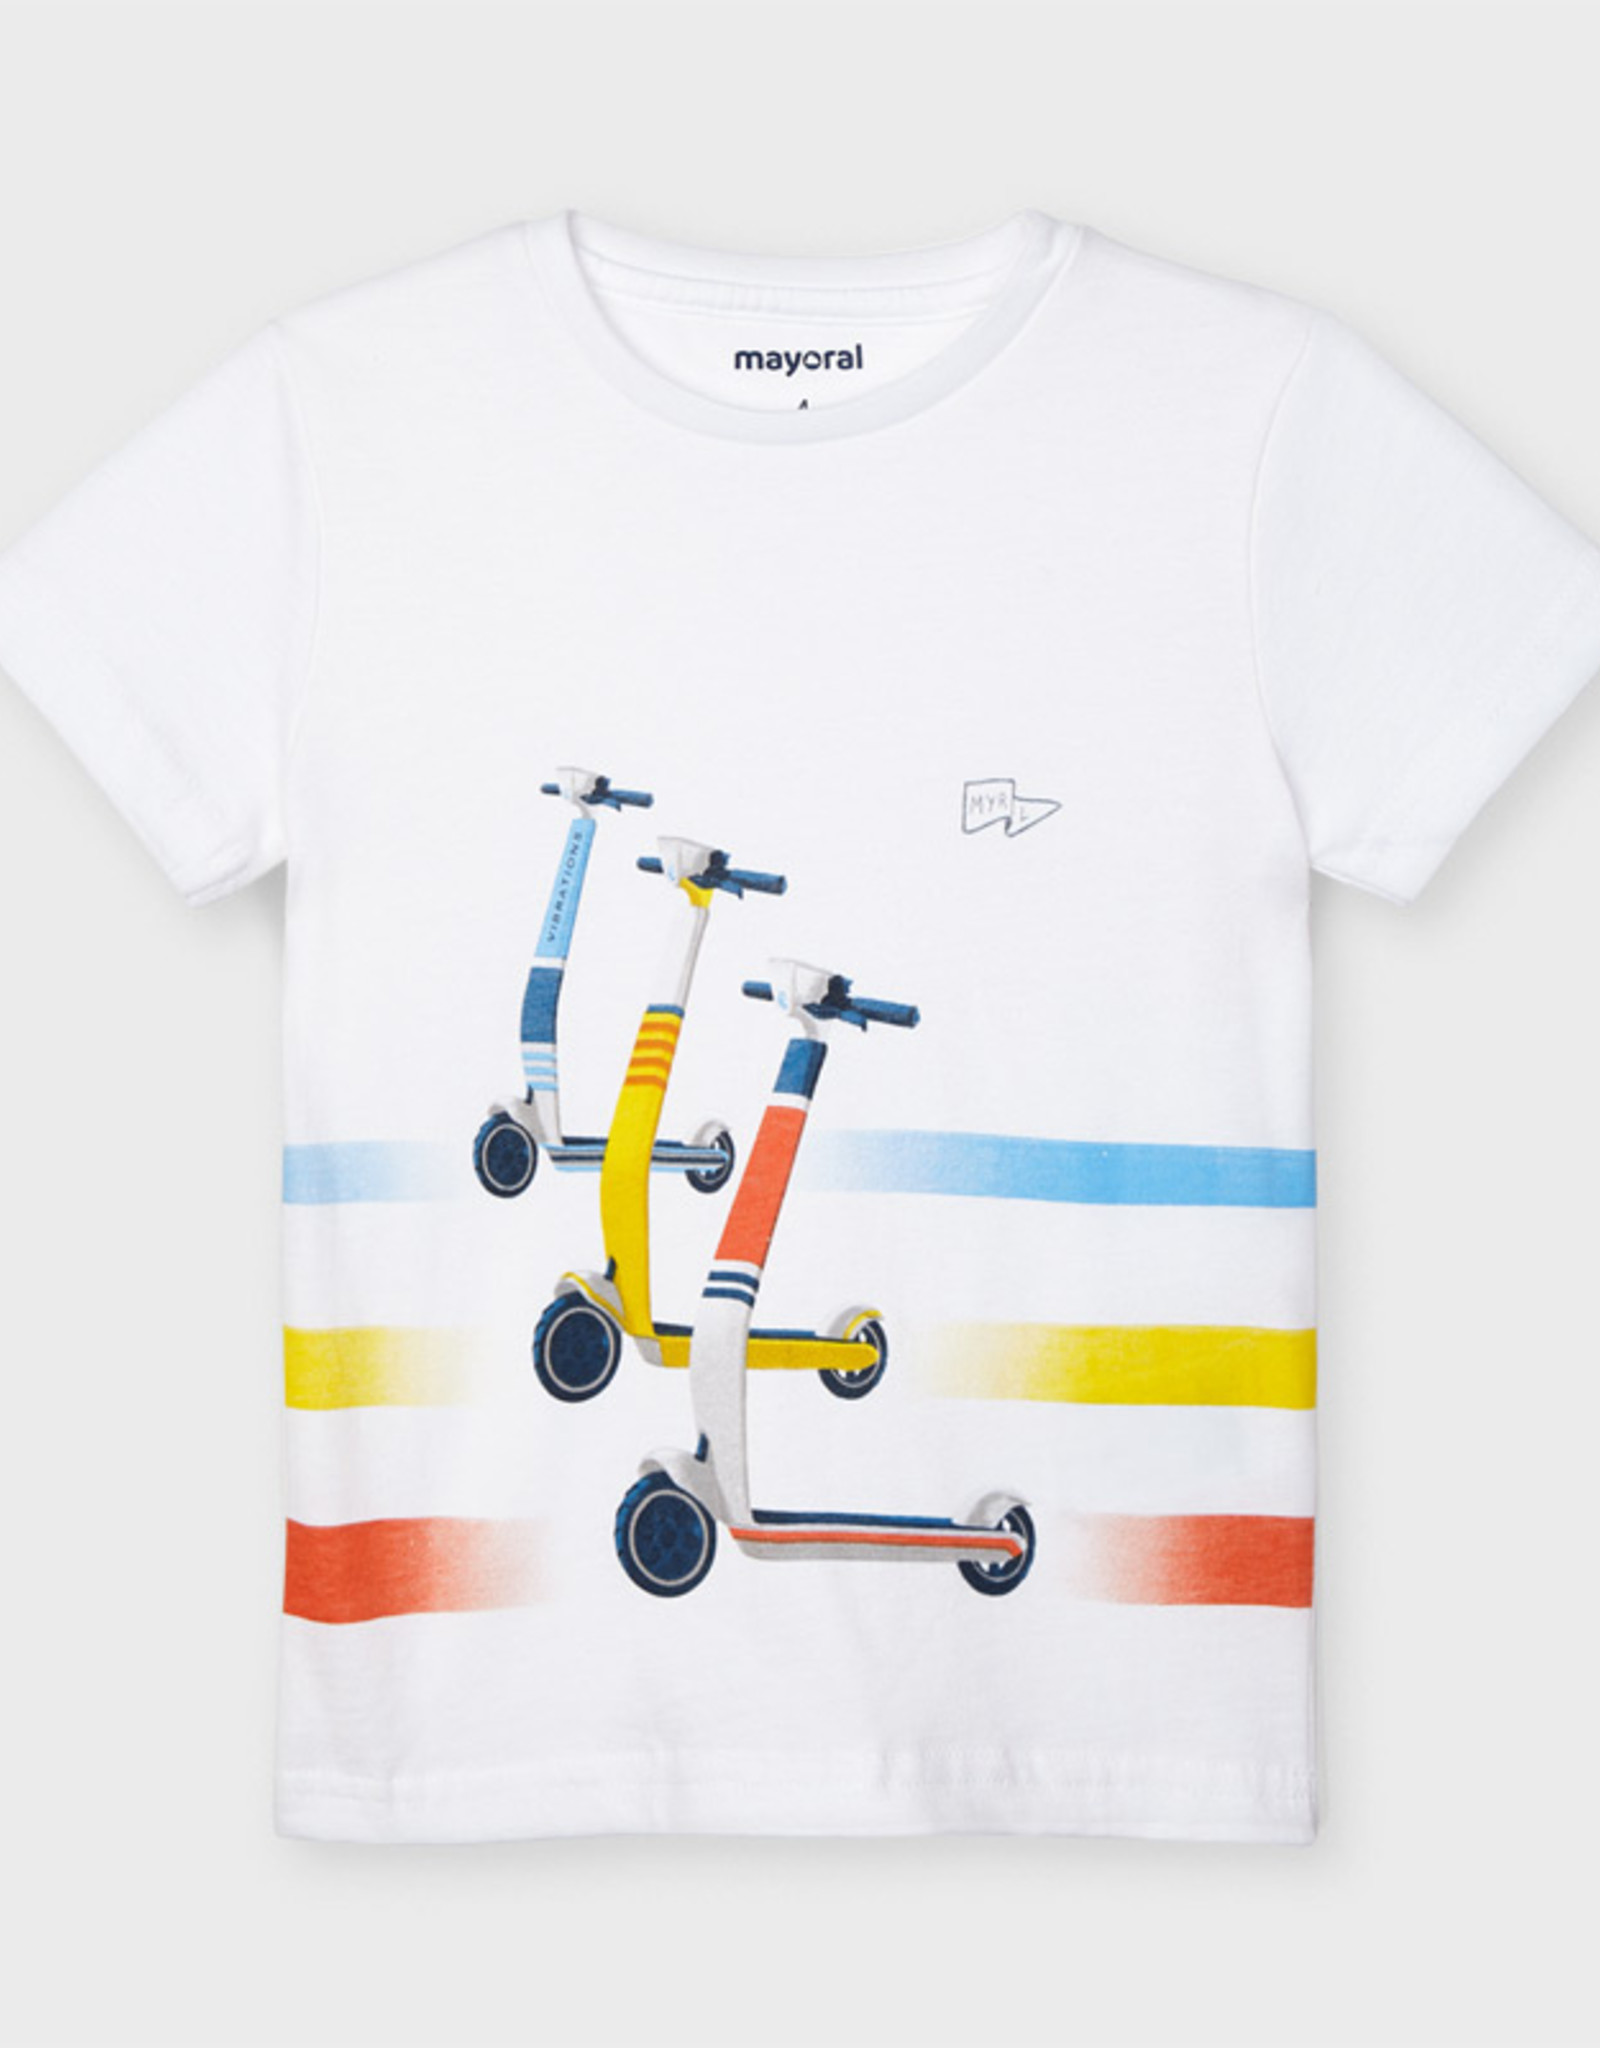 Mayoral Scooter t-shirt